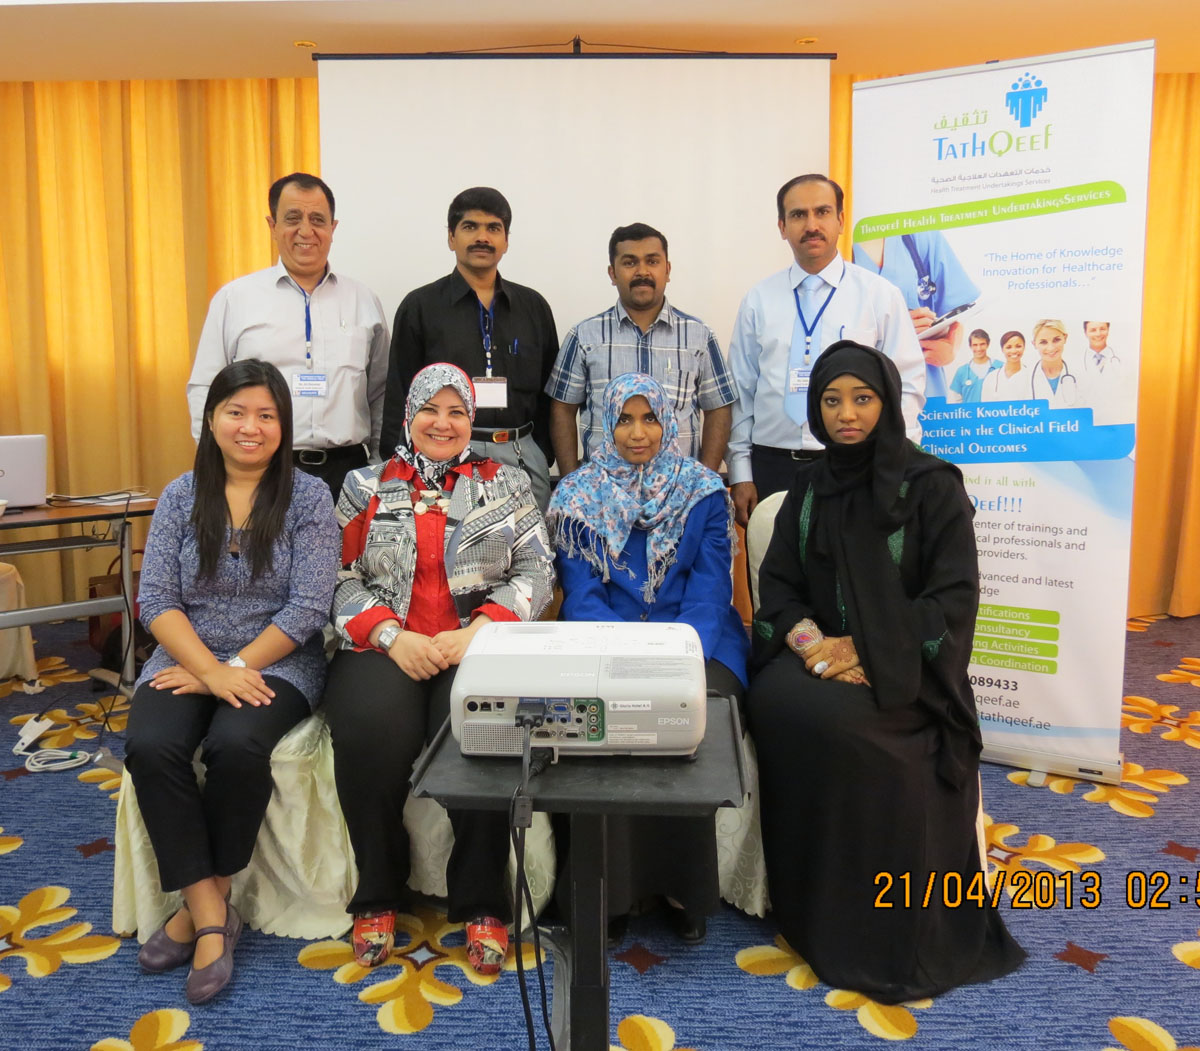 Communication in the Medical Field Workshop